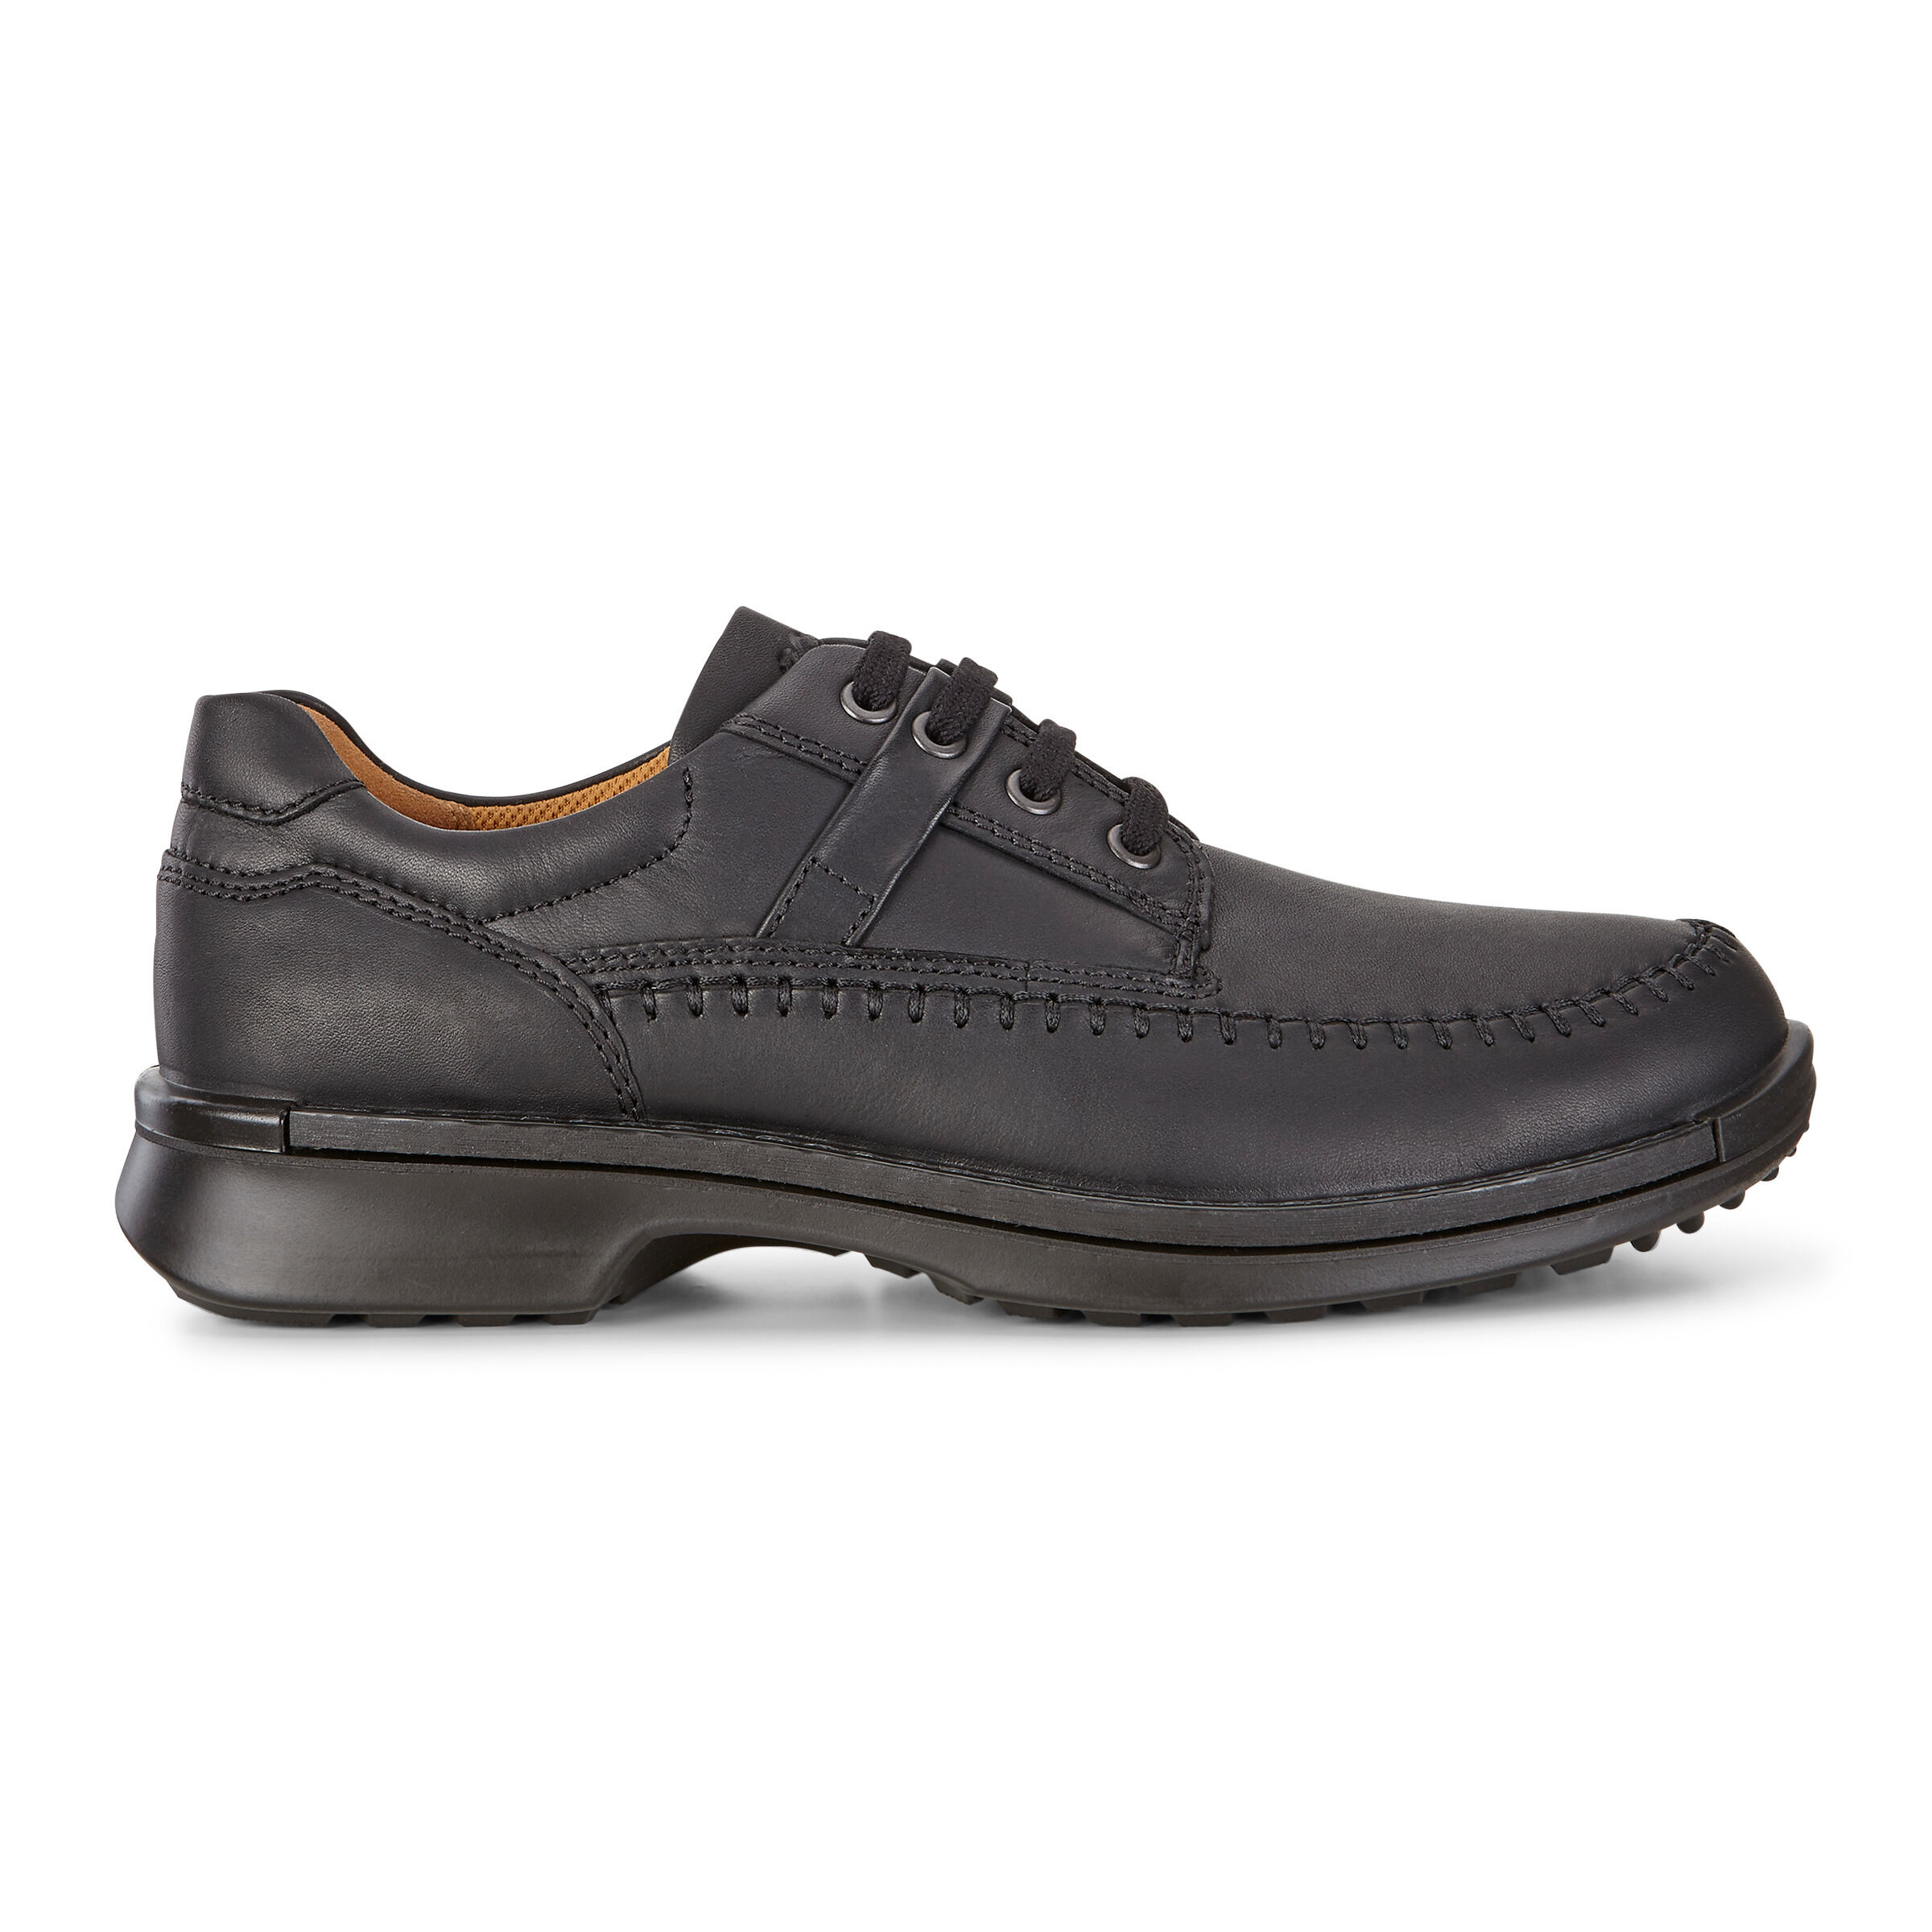 Men's Fusion Moc Toe Tie Shoe | Men's